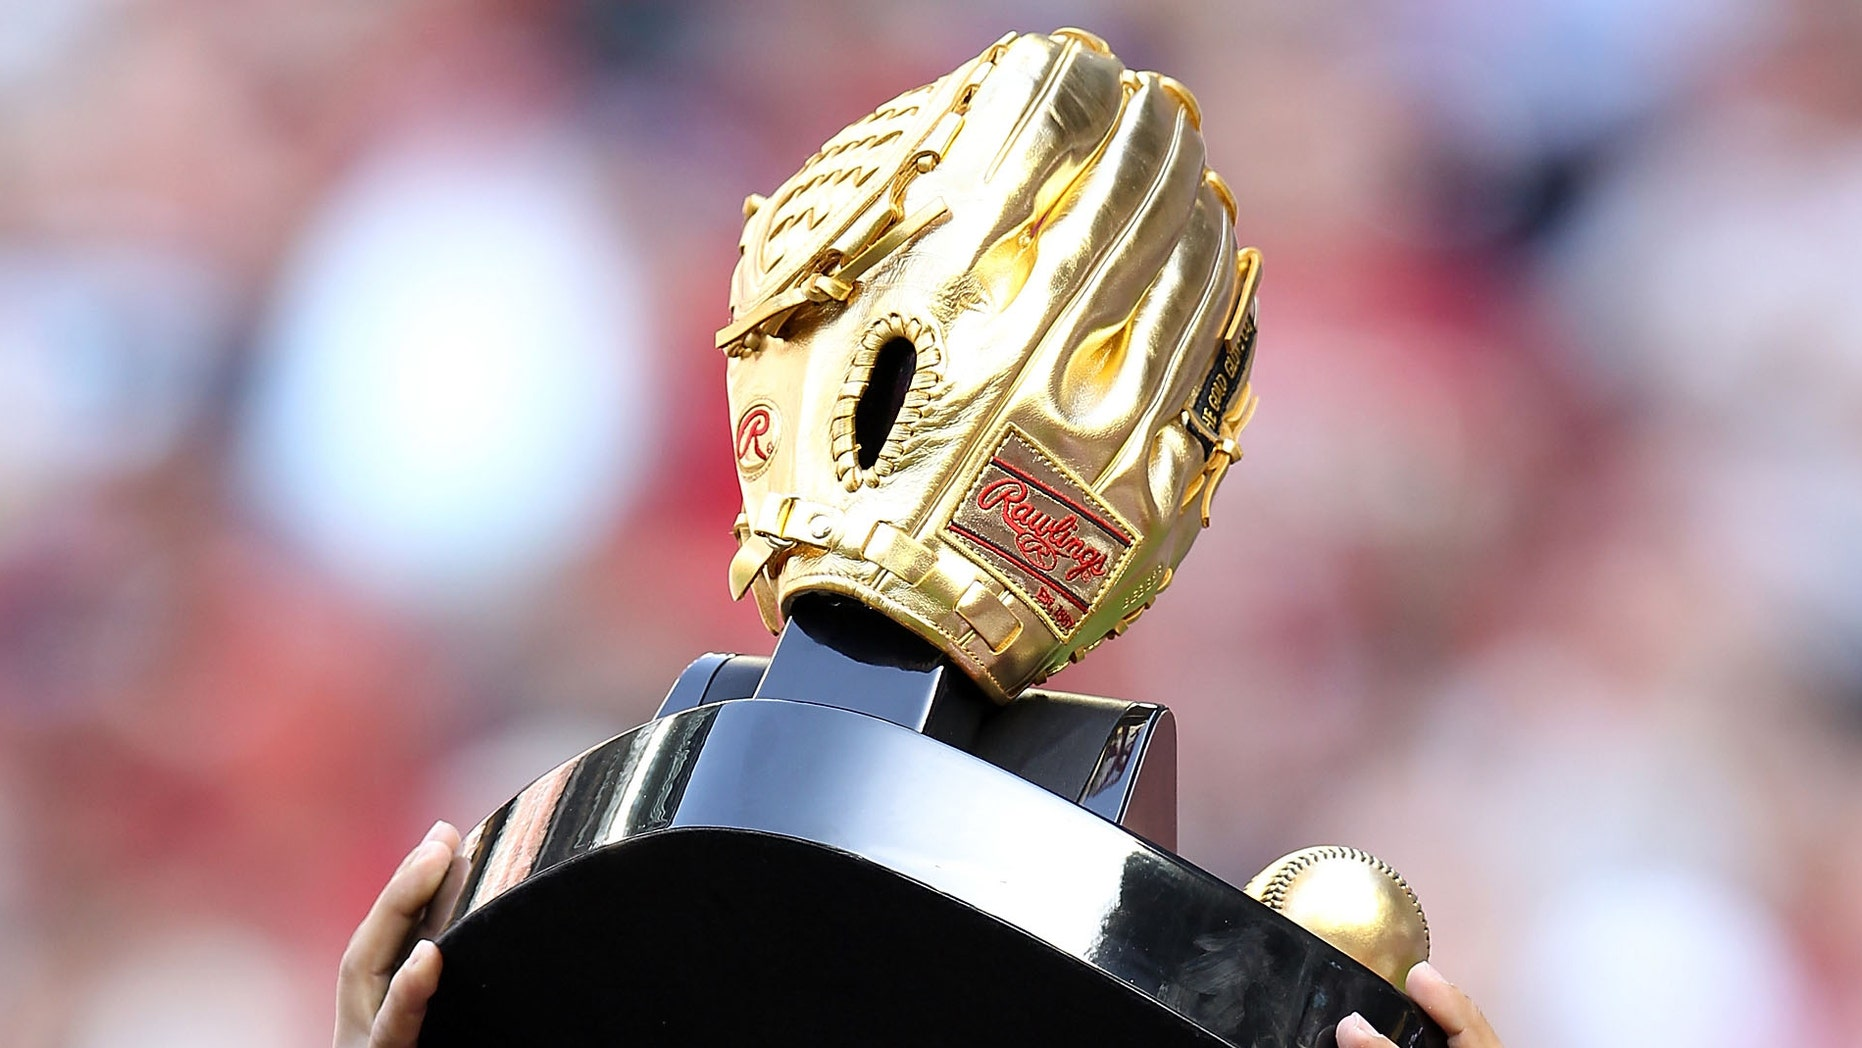 The Rawlings Gold Glove Award is given annually to the MLB players judged to have exhibited superior individual fielding performances.  (Photo by Christian Petersen/Getty Images)